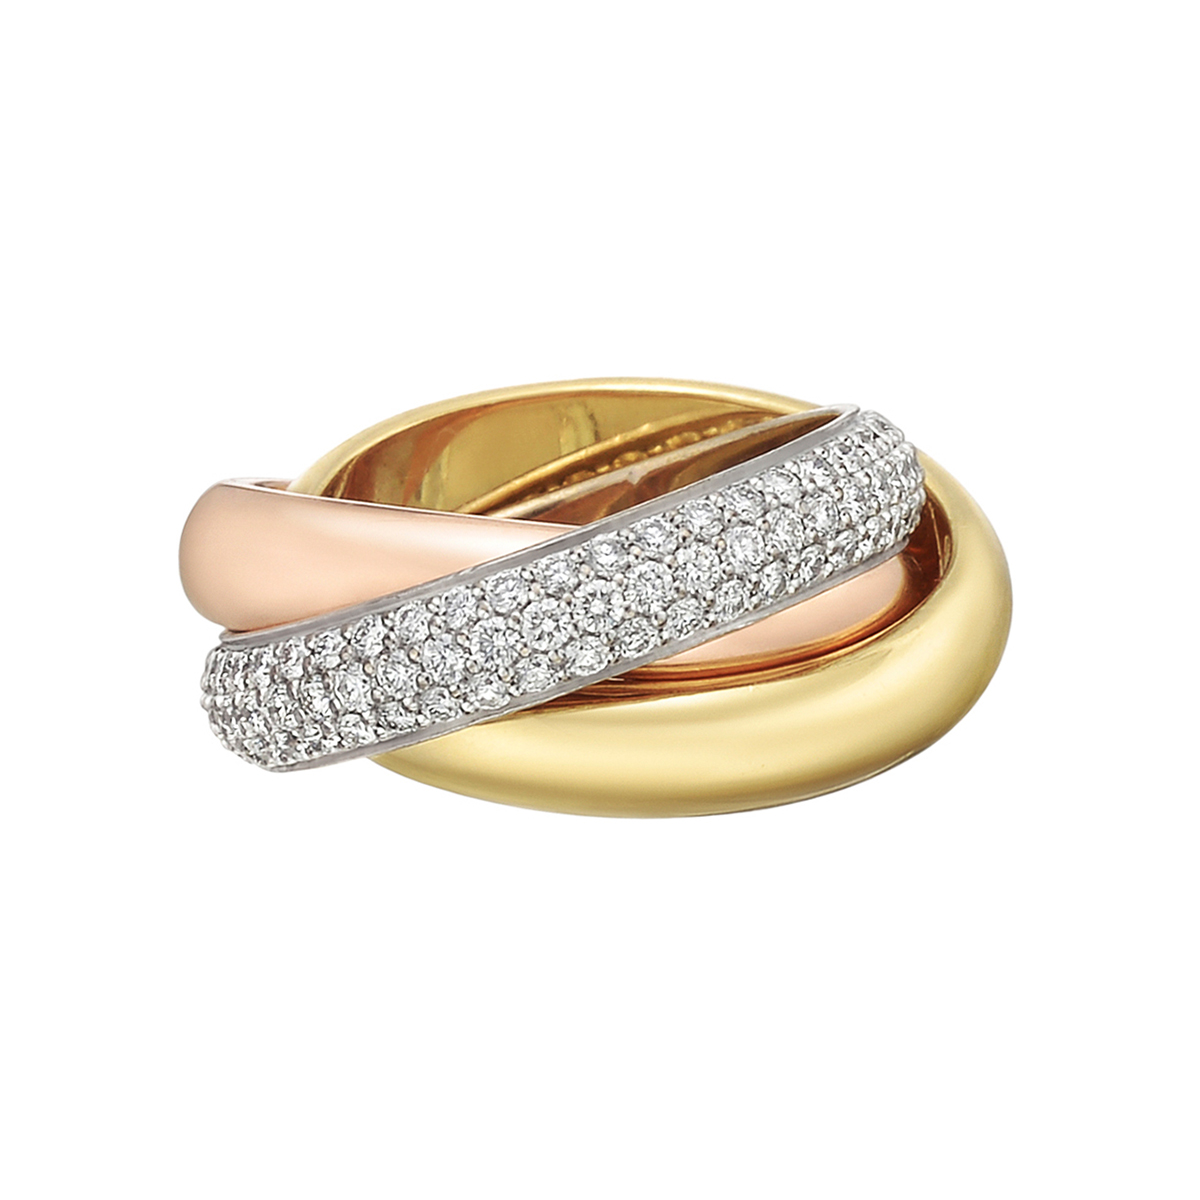 Cartier Trinity Wedding Ring: Cartier Tricolored Gold Pavé Diamond Trinity Ring